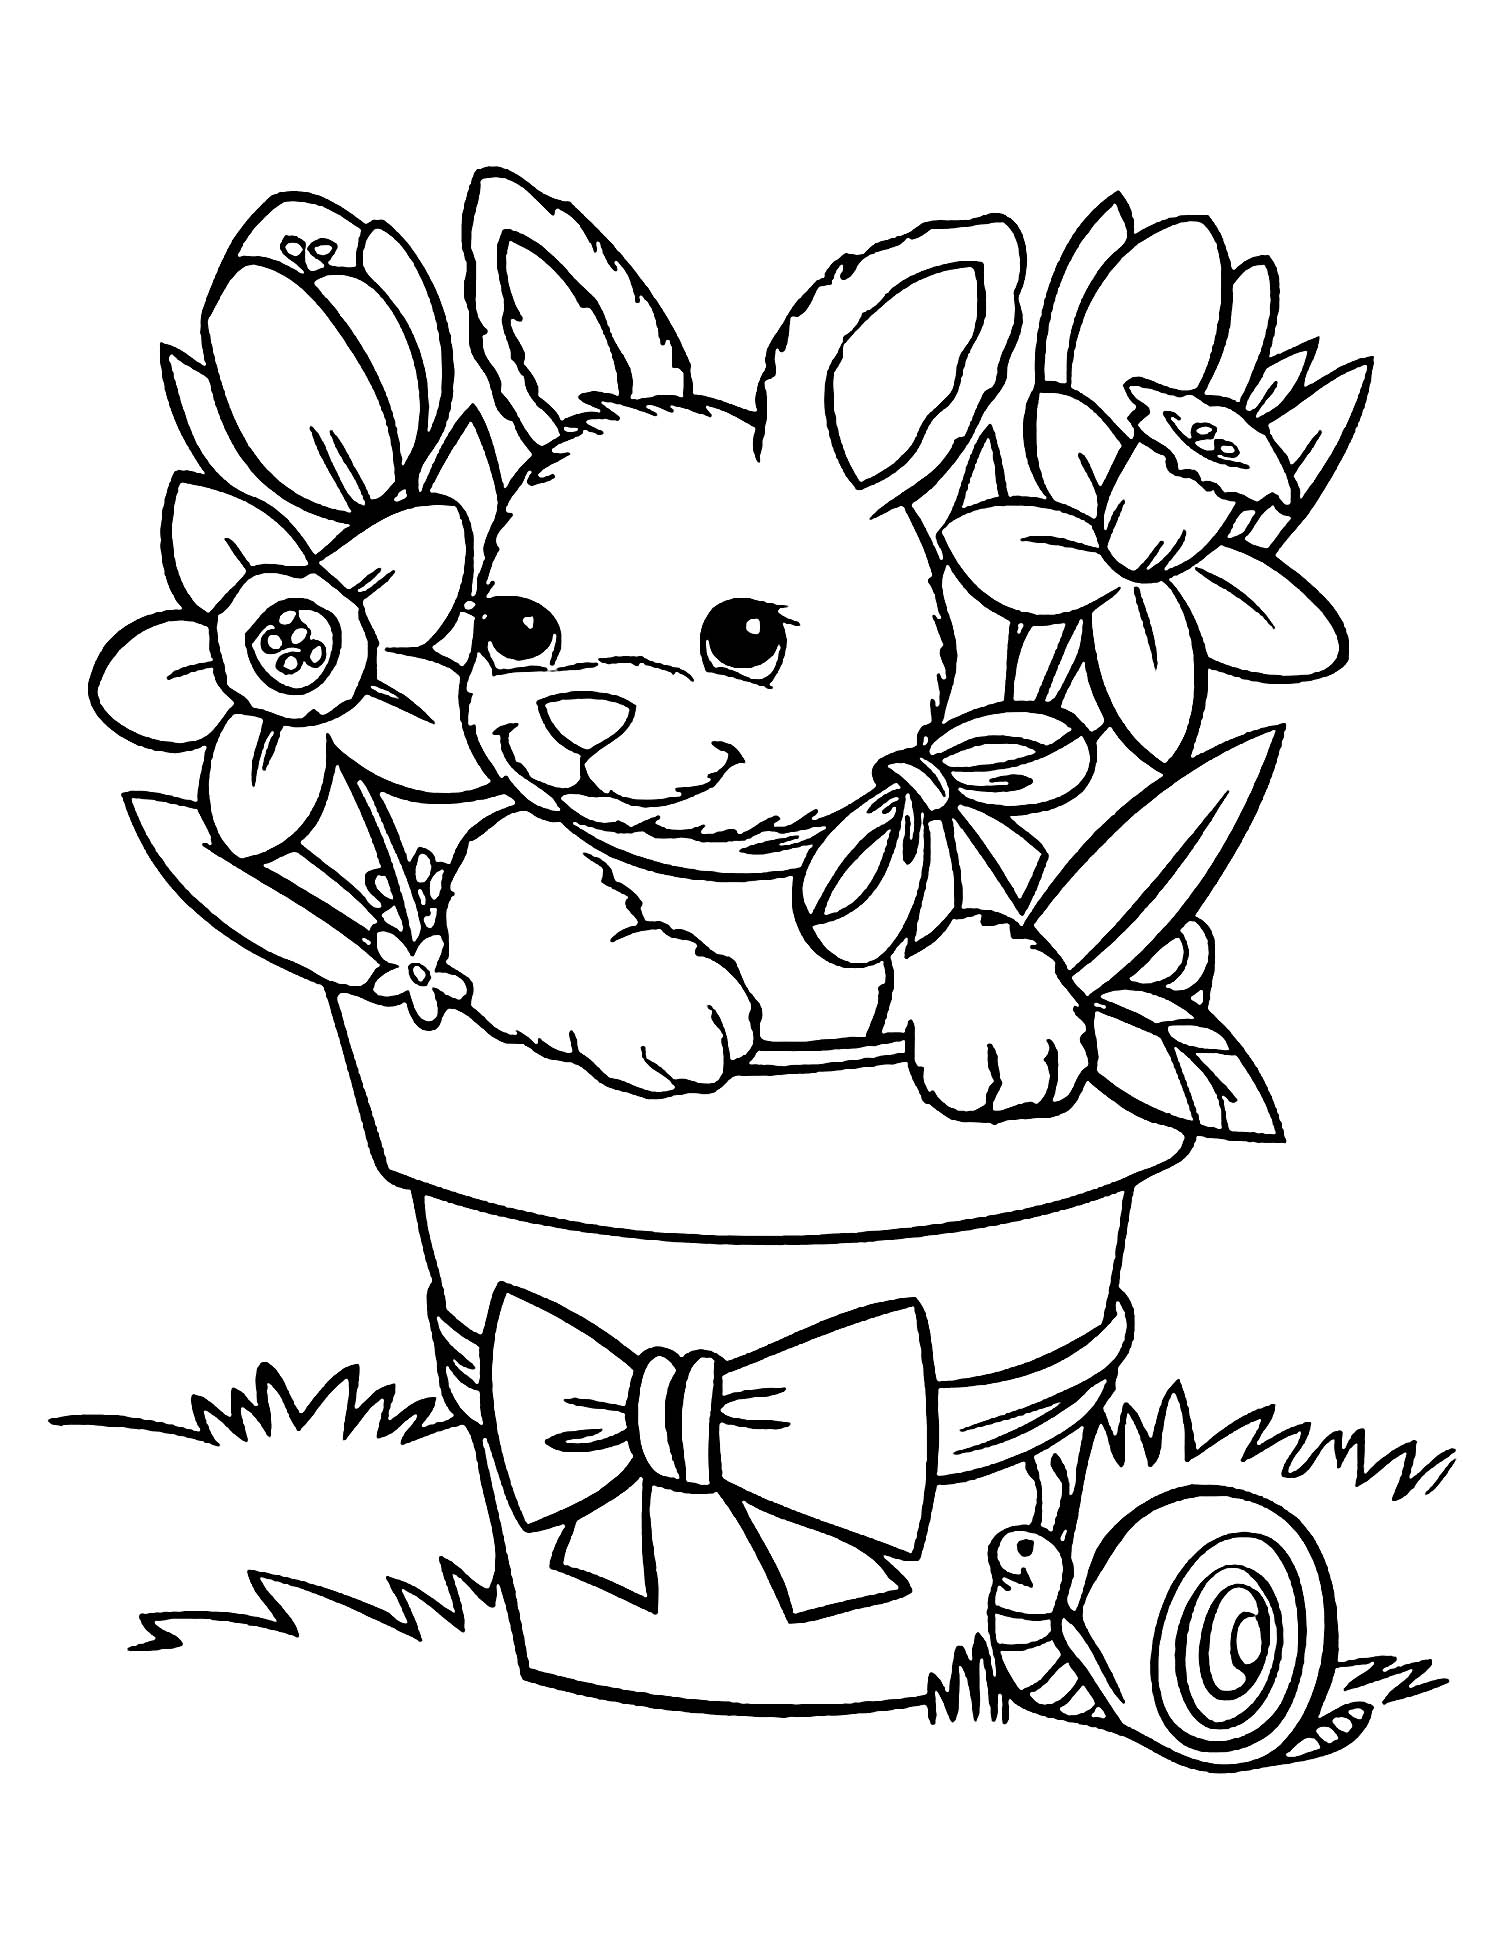 bunny coloring pages bunny rabbit coloring pages to download and print for free coloring pages bunny